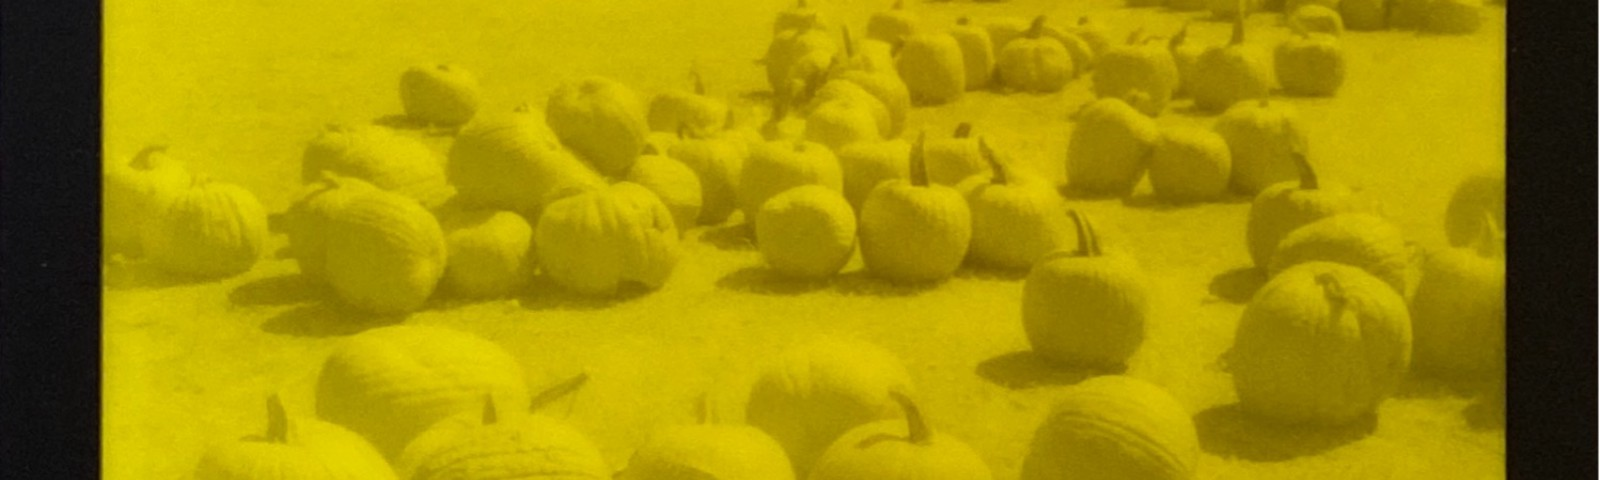 Yellow and black polaroid photo of a field of pumpkins